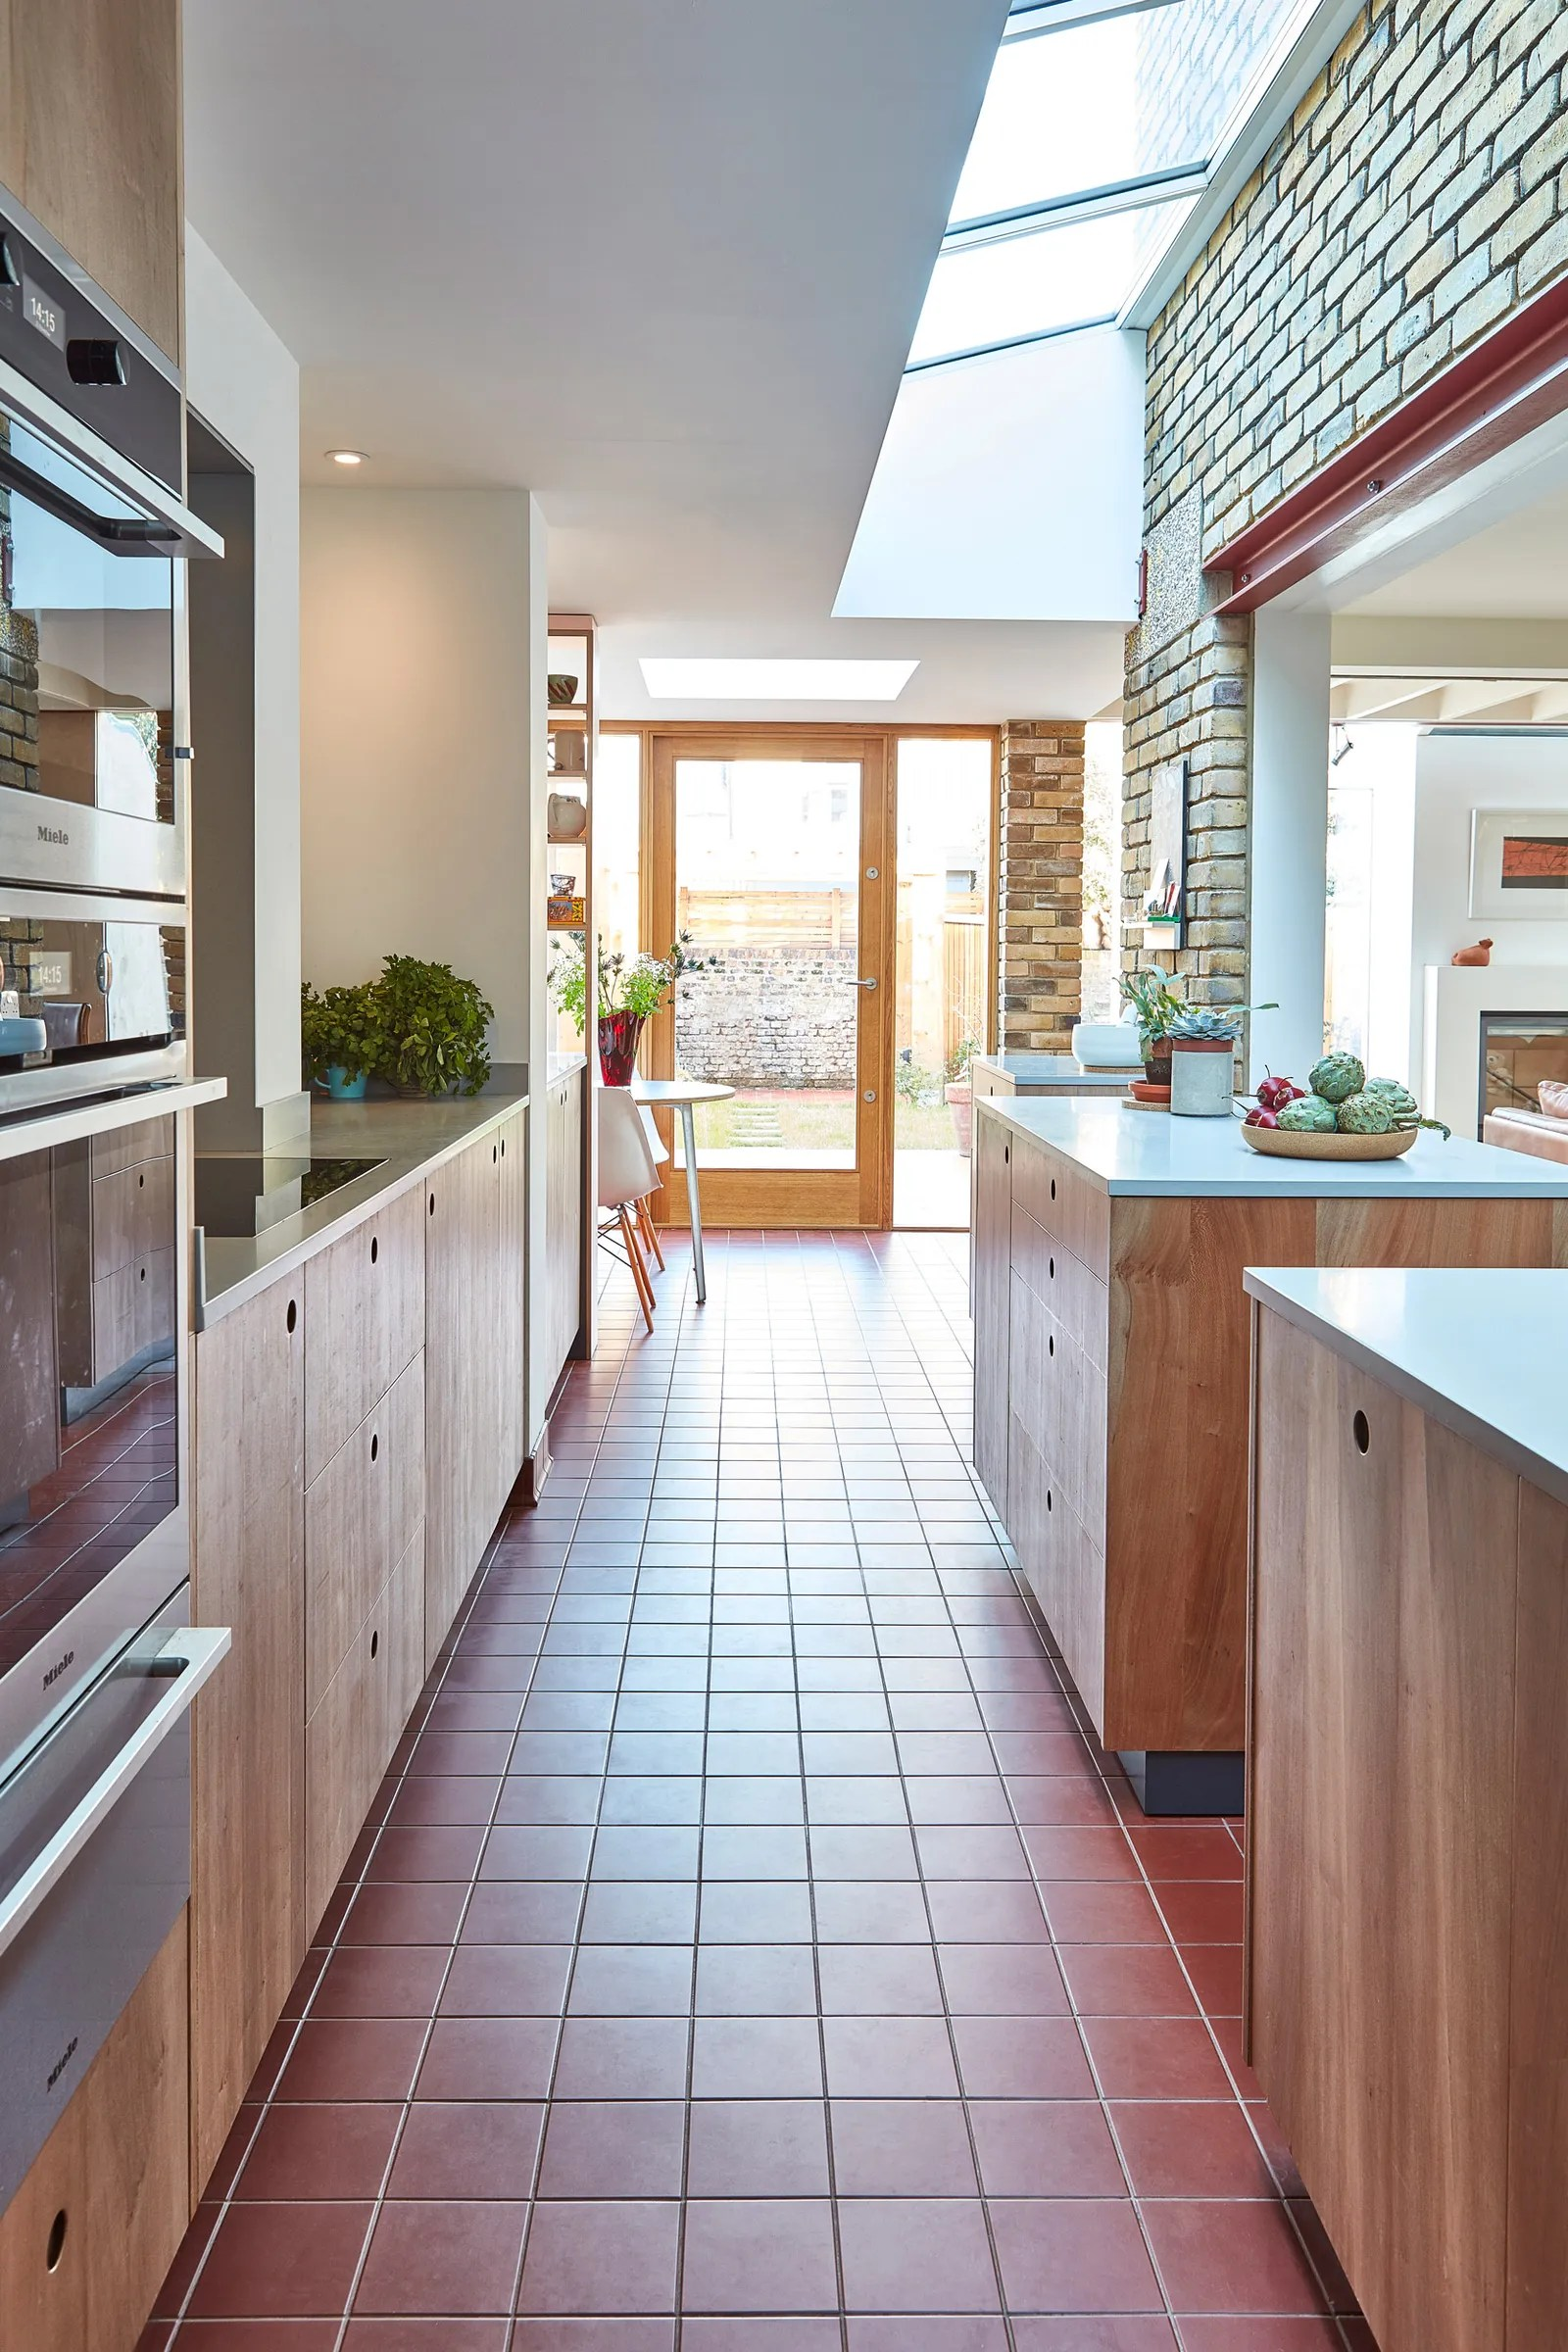 Whoa This Cozy Galley London Kitchen Used To Be An